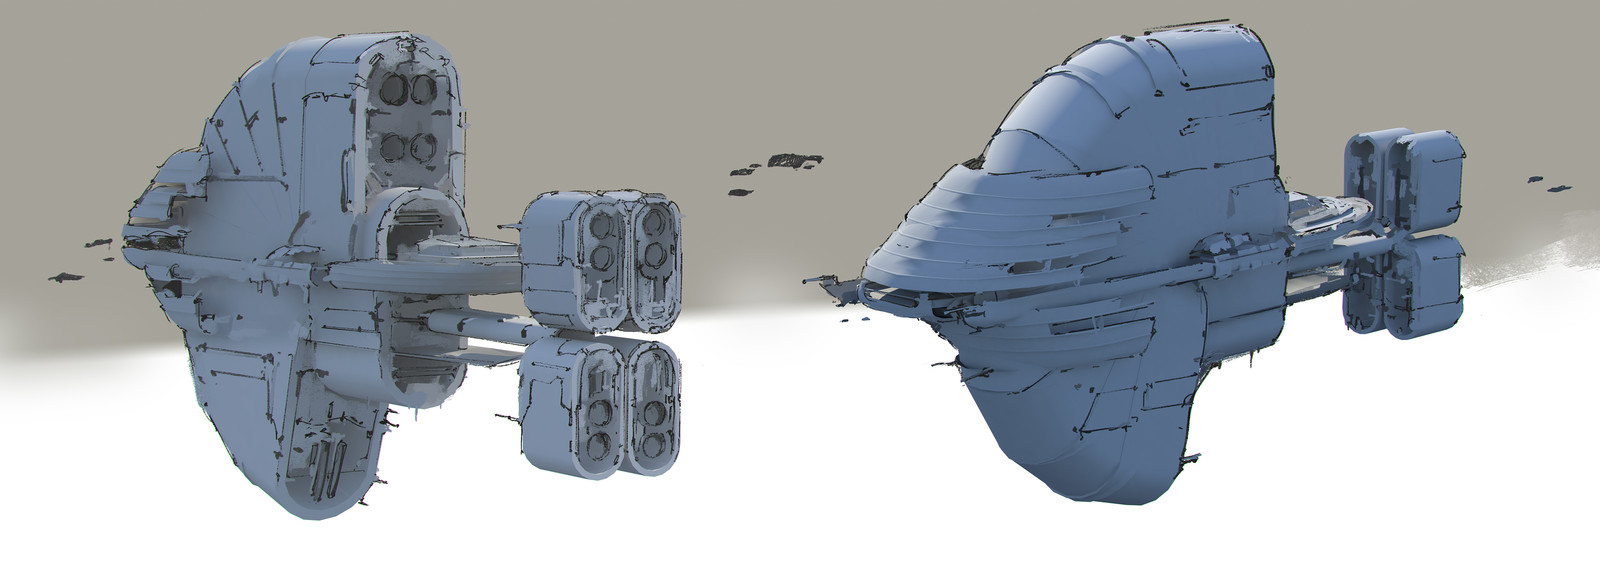 The Job Spaceships sketches